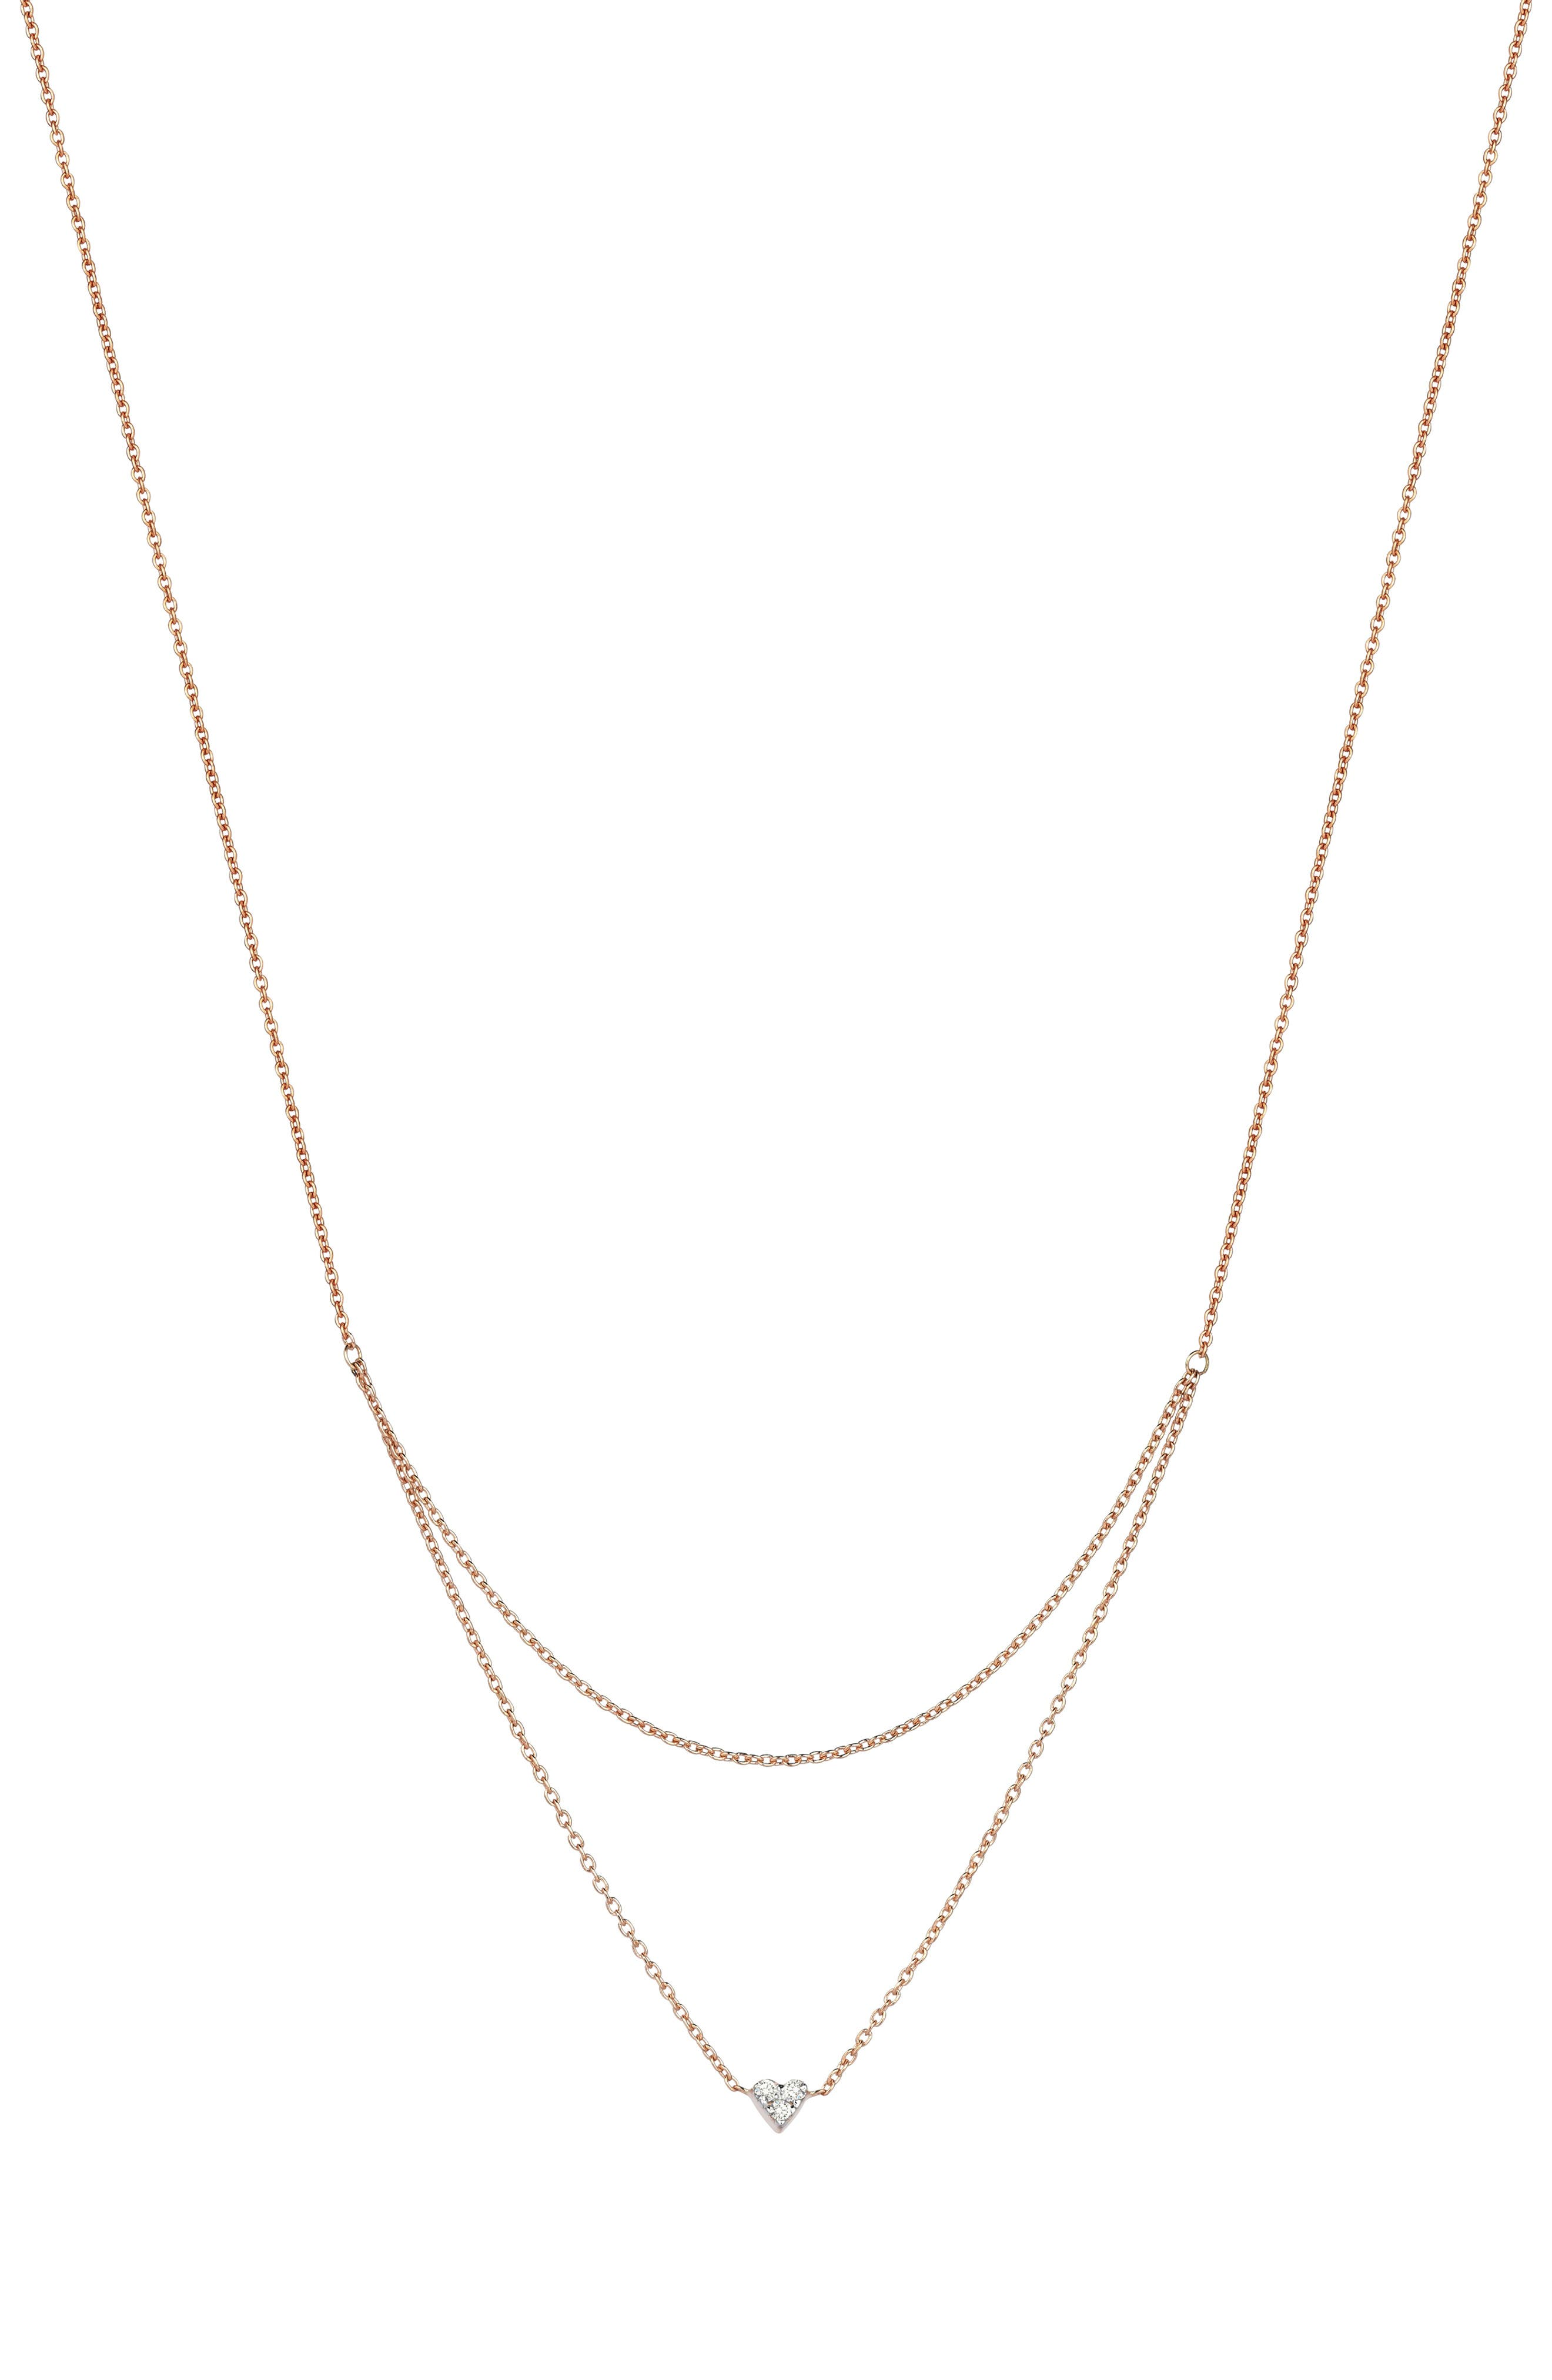 KISMET BY MILKA DOUBLE LAYER DIAMOND PENDANT NECKLACE